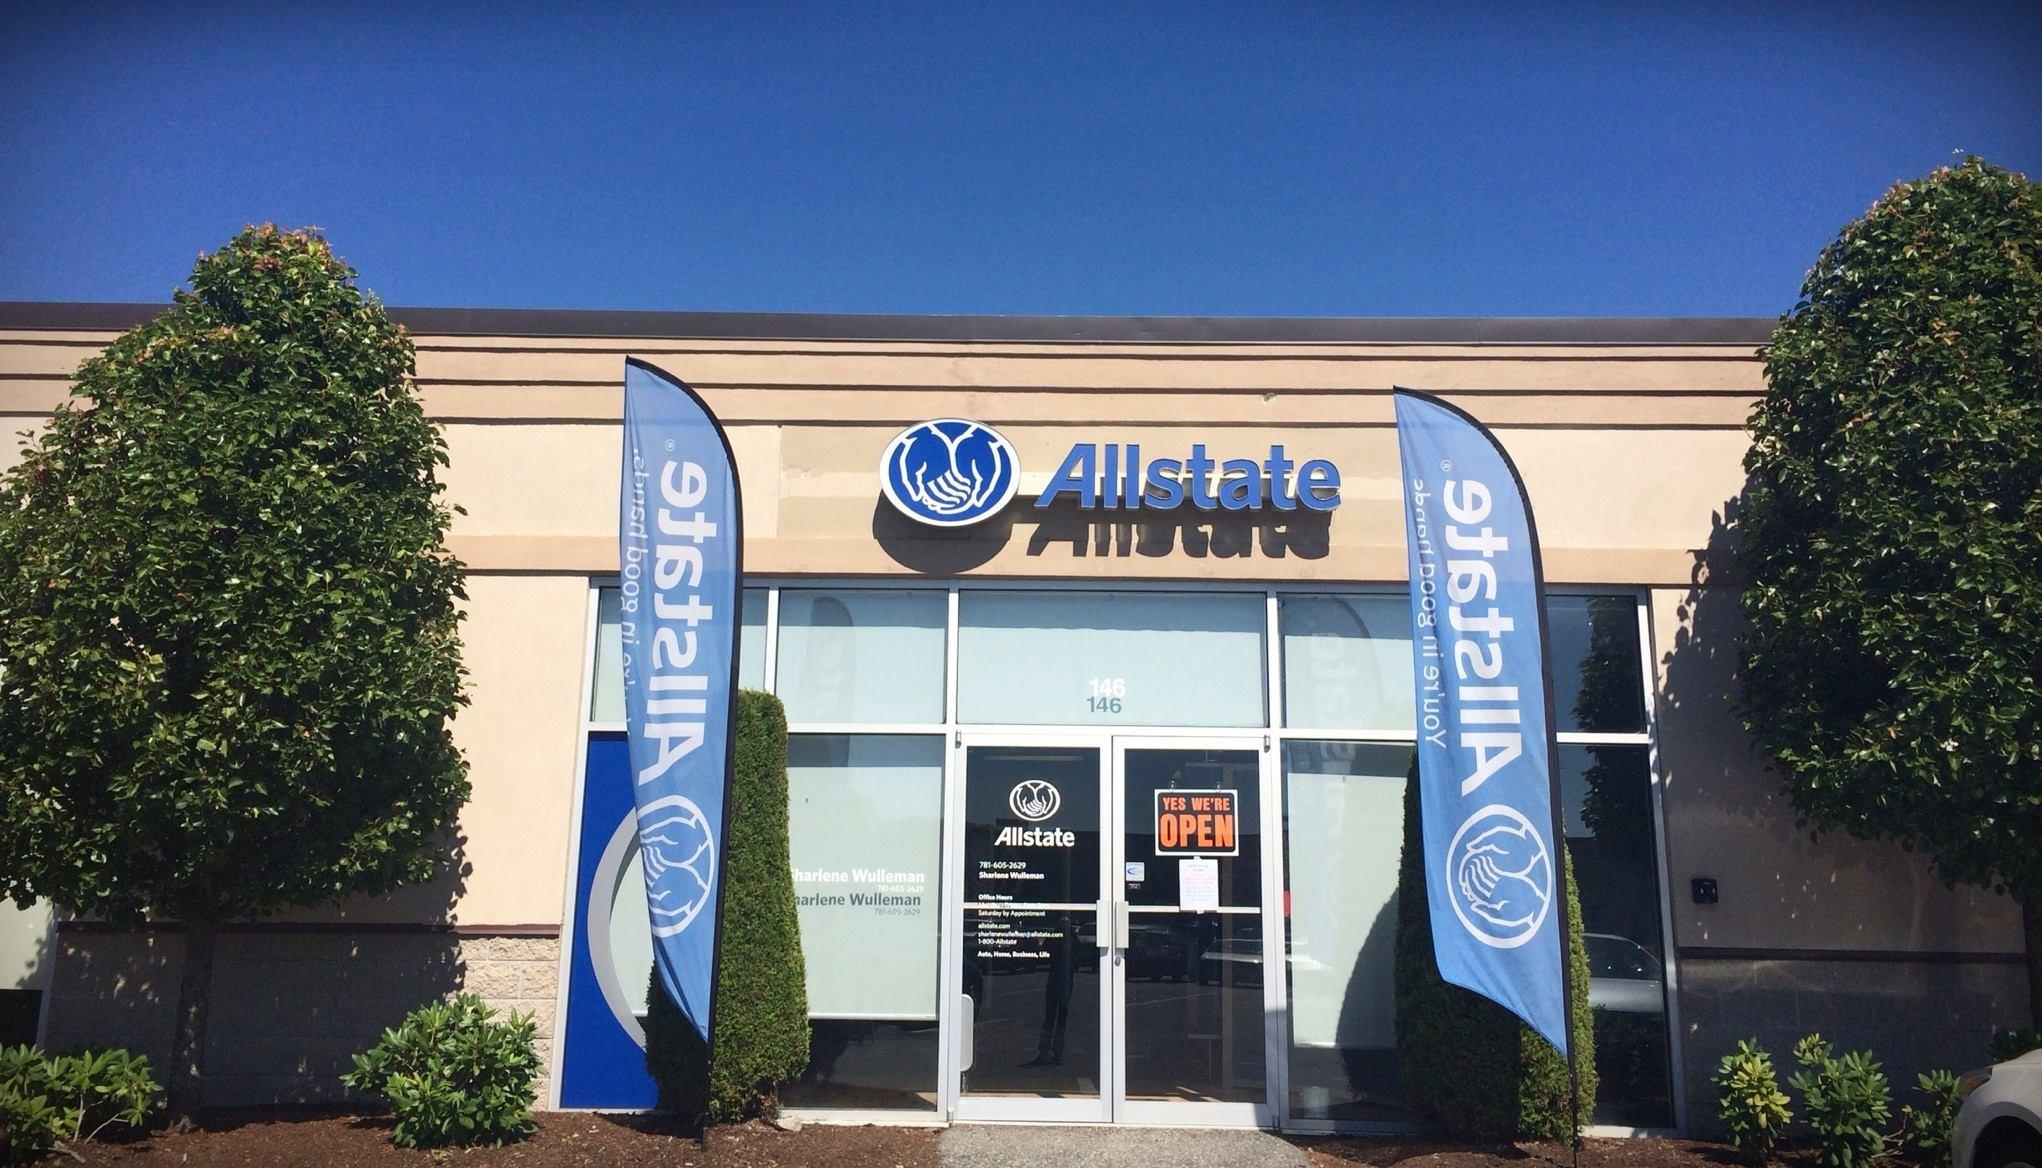 Allstate Flood Sign In >> Allstate Insurance Agent: Sharlene Wulleman Coupons Malden MA near me | 8coupons